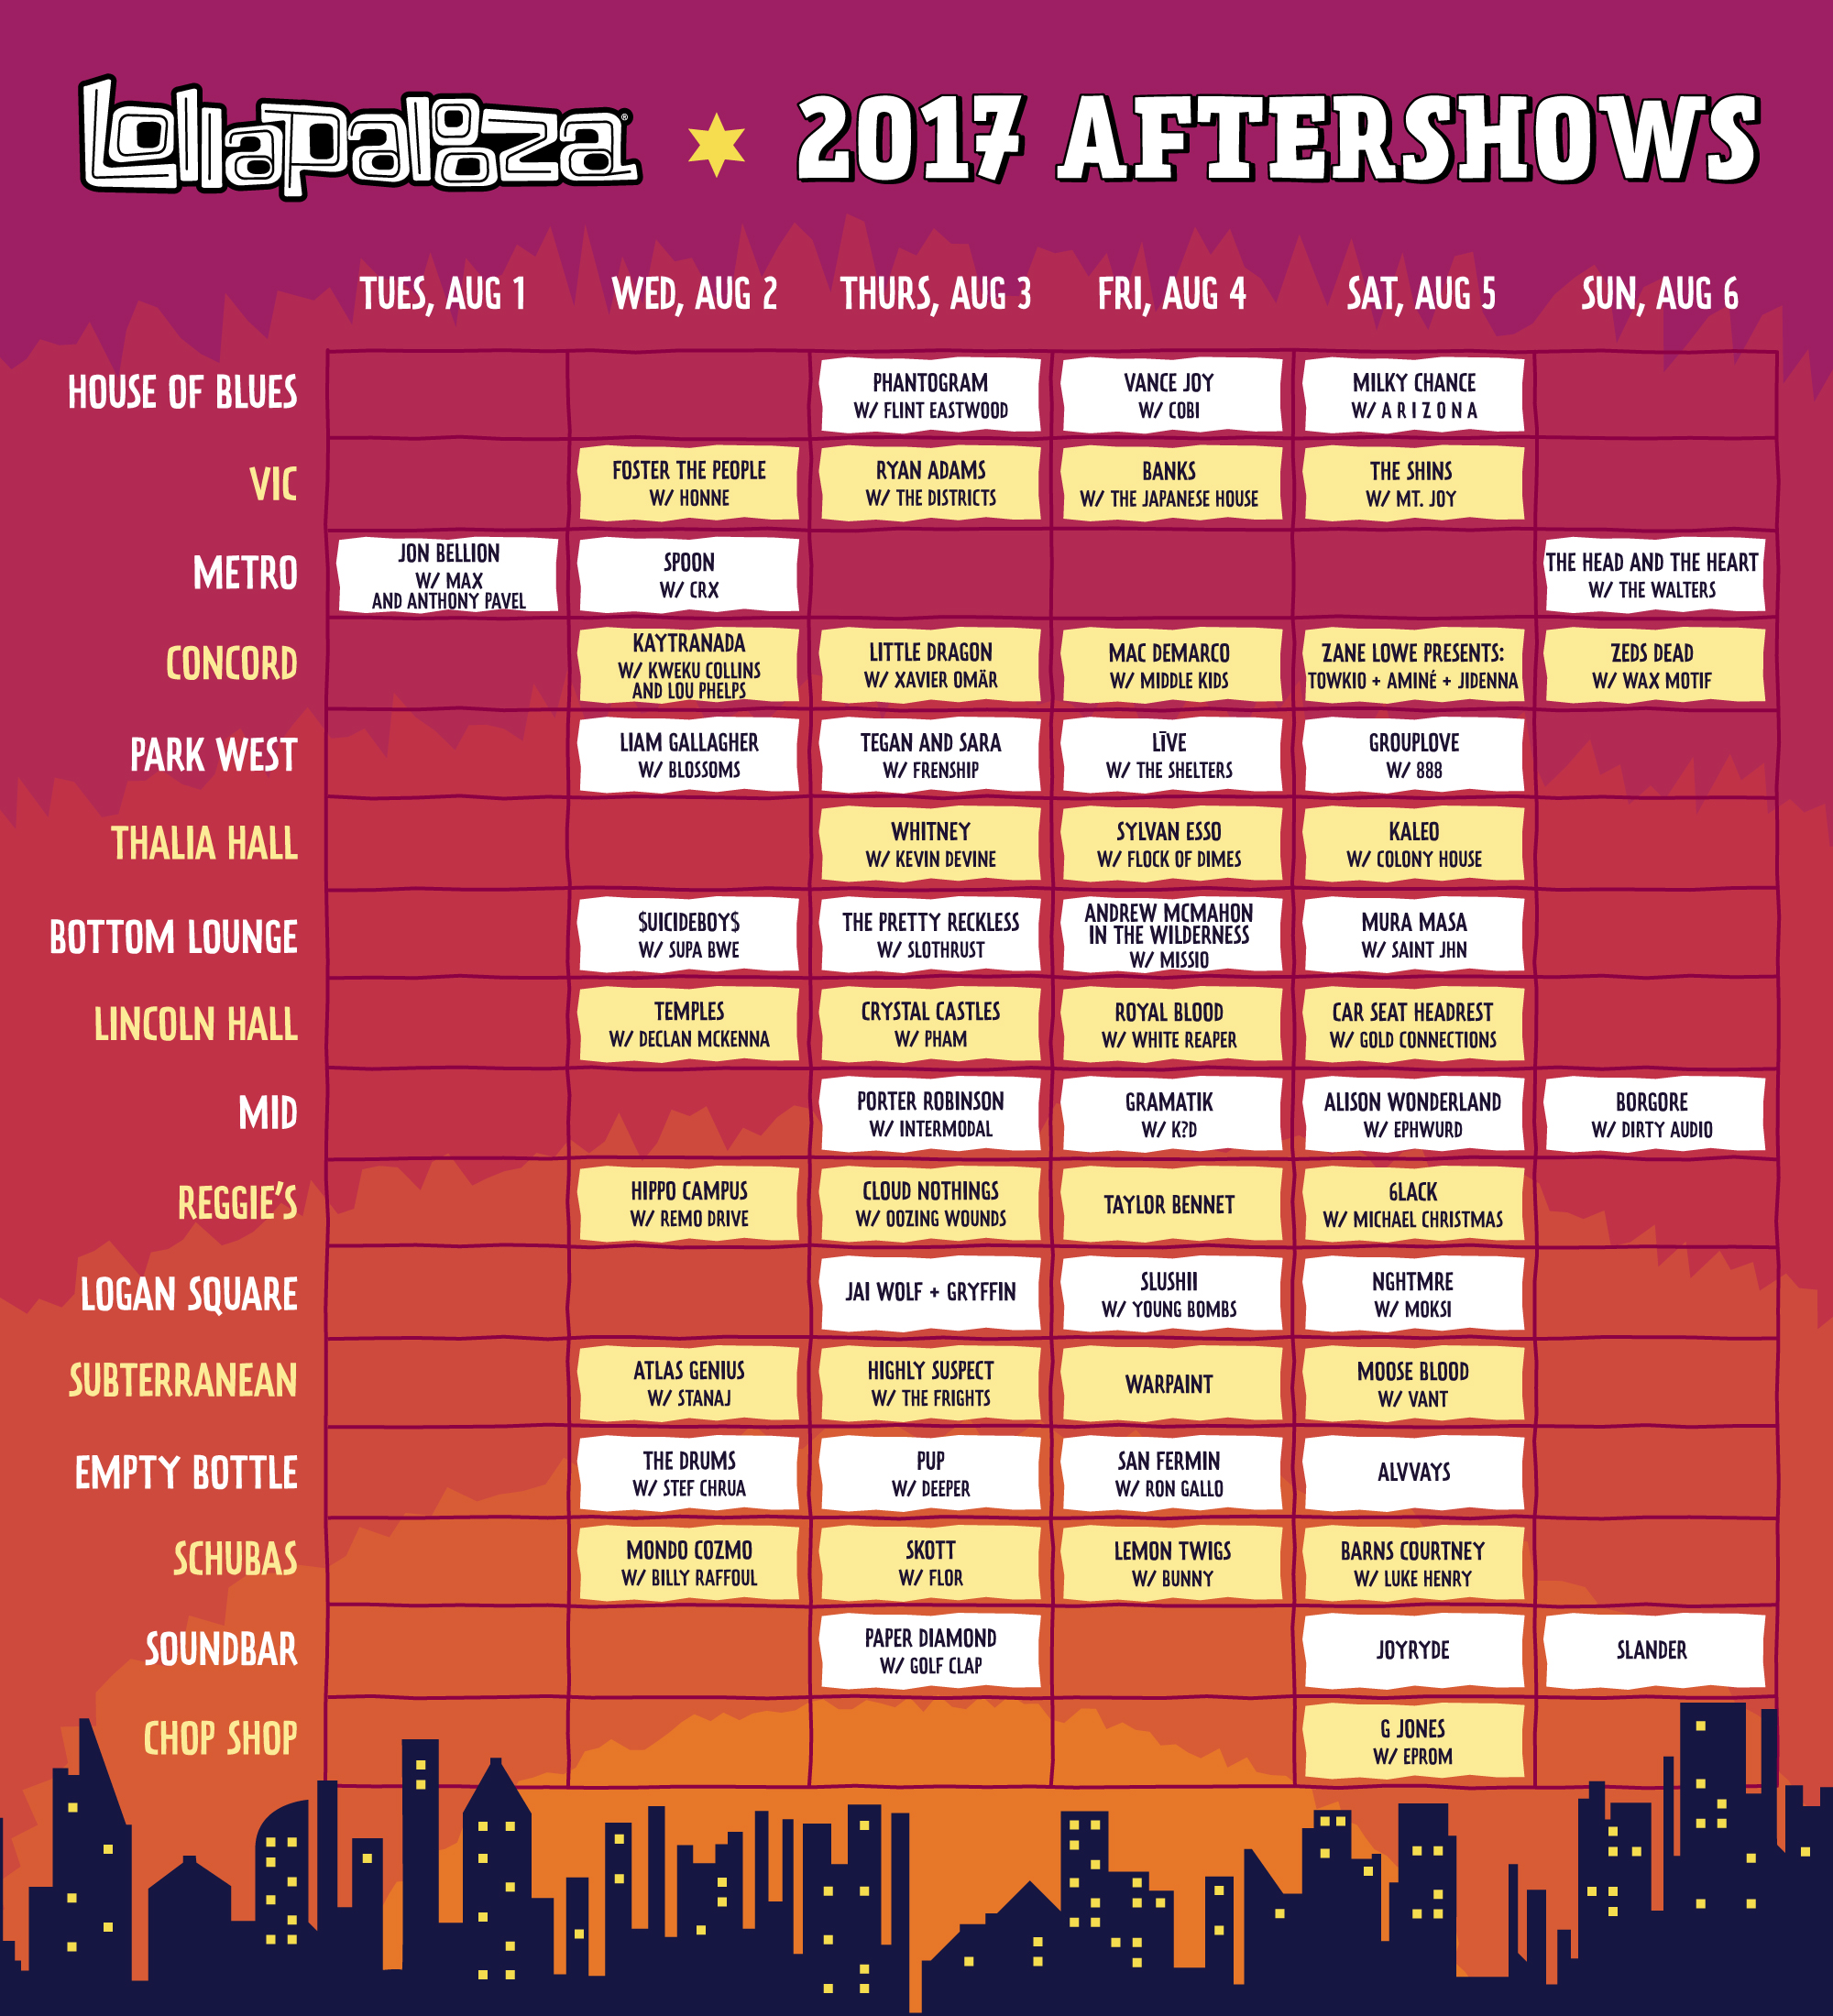 Lollapalooza Announces Aftershows For 2017 Festival Weekend